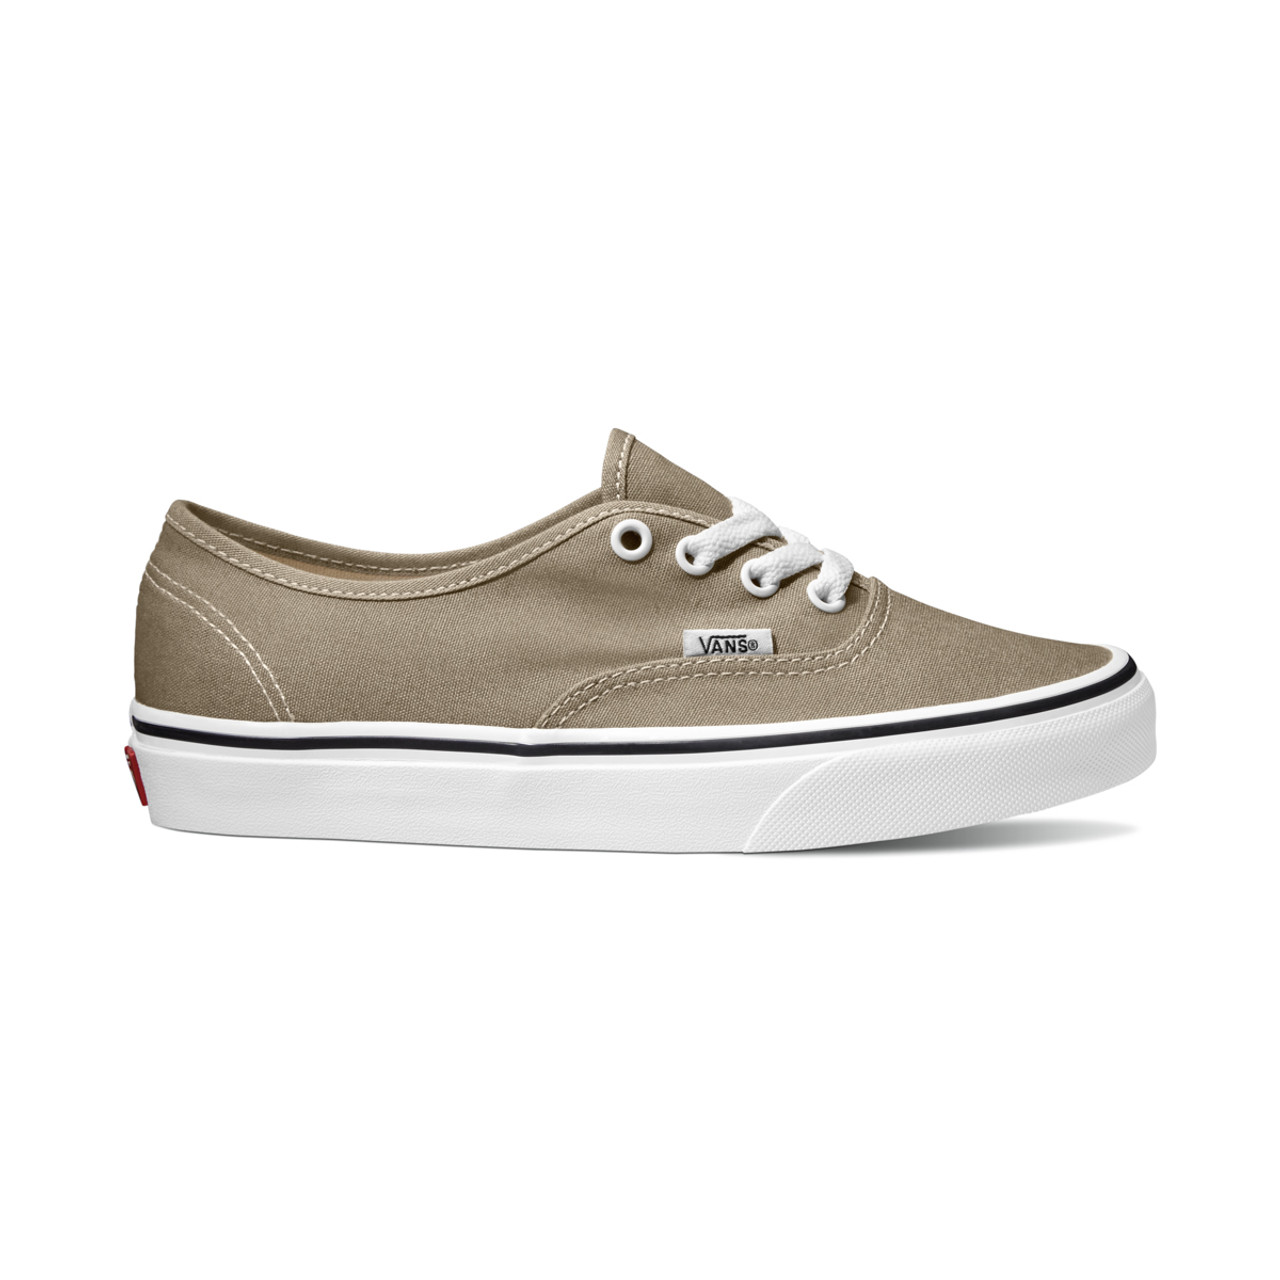 8aec1a3c0d0 Authentic - Desert Taupe True White - Val Surf